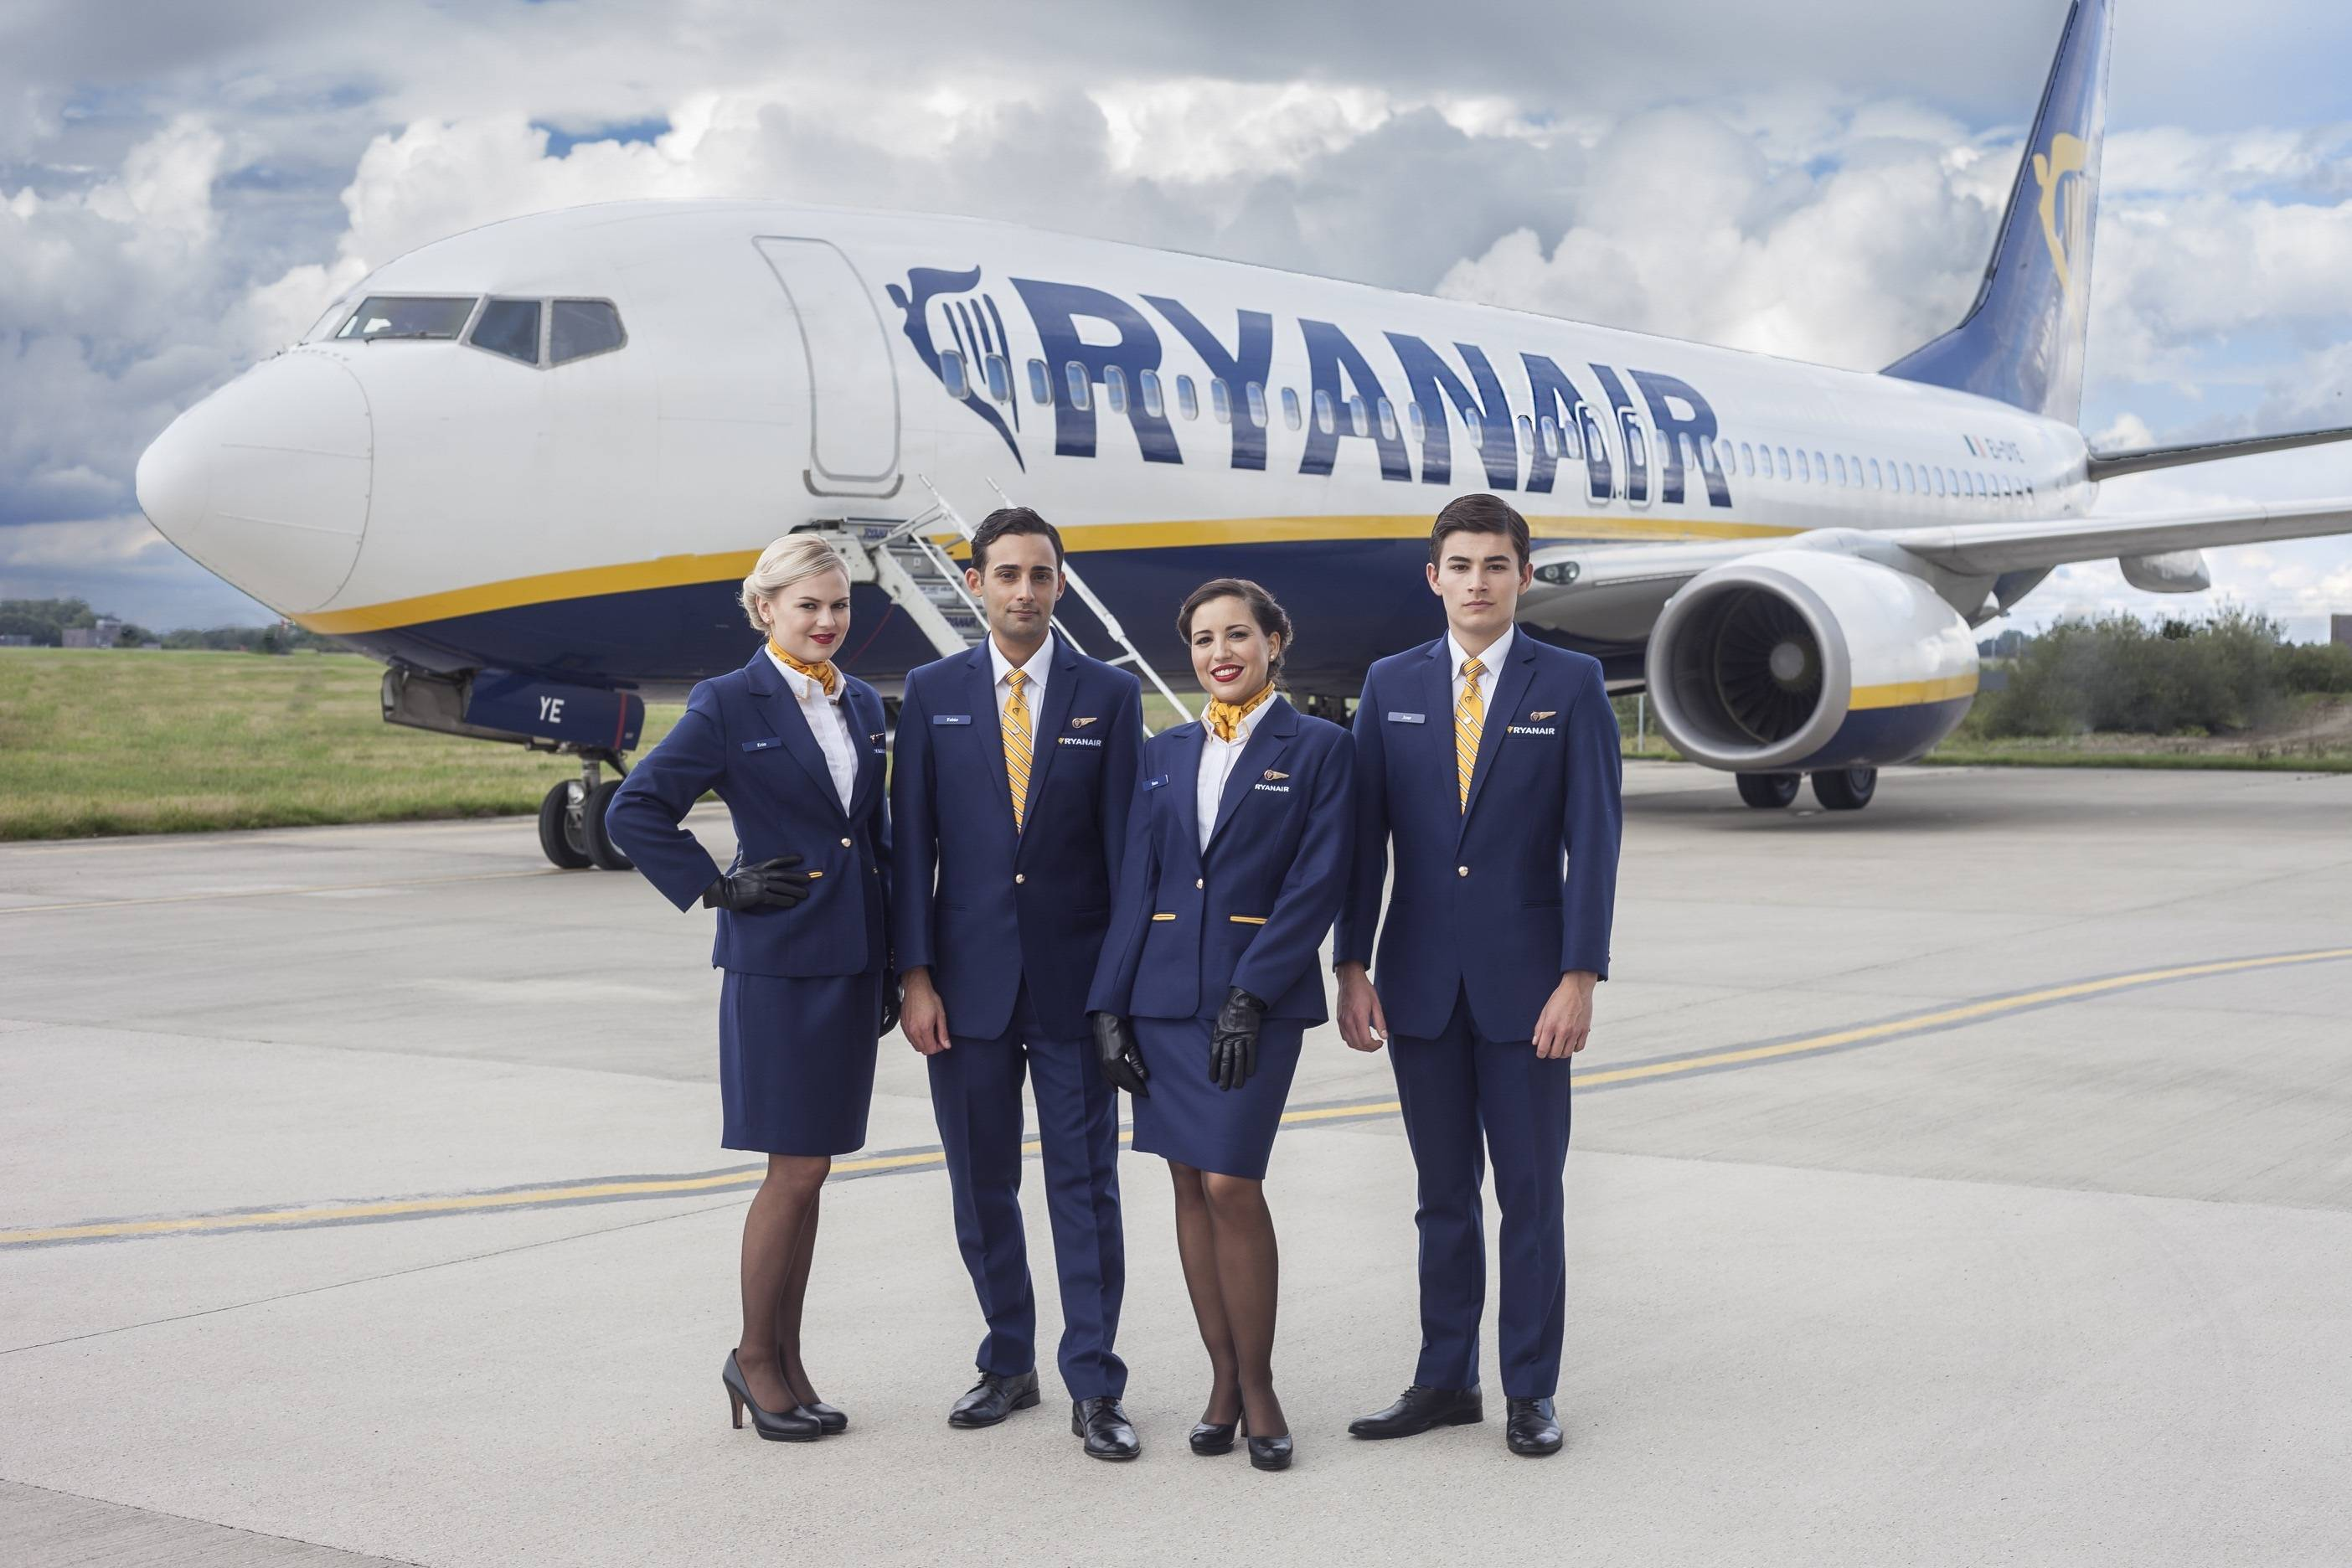 ryanair-uniform 2